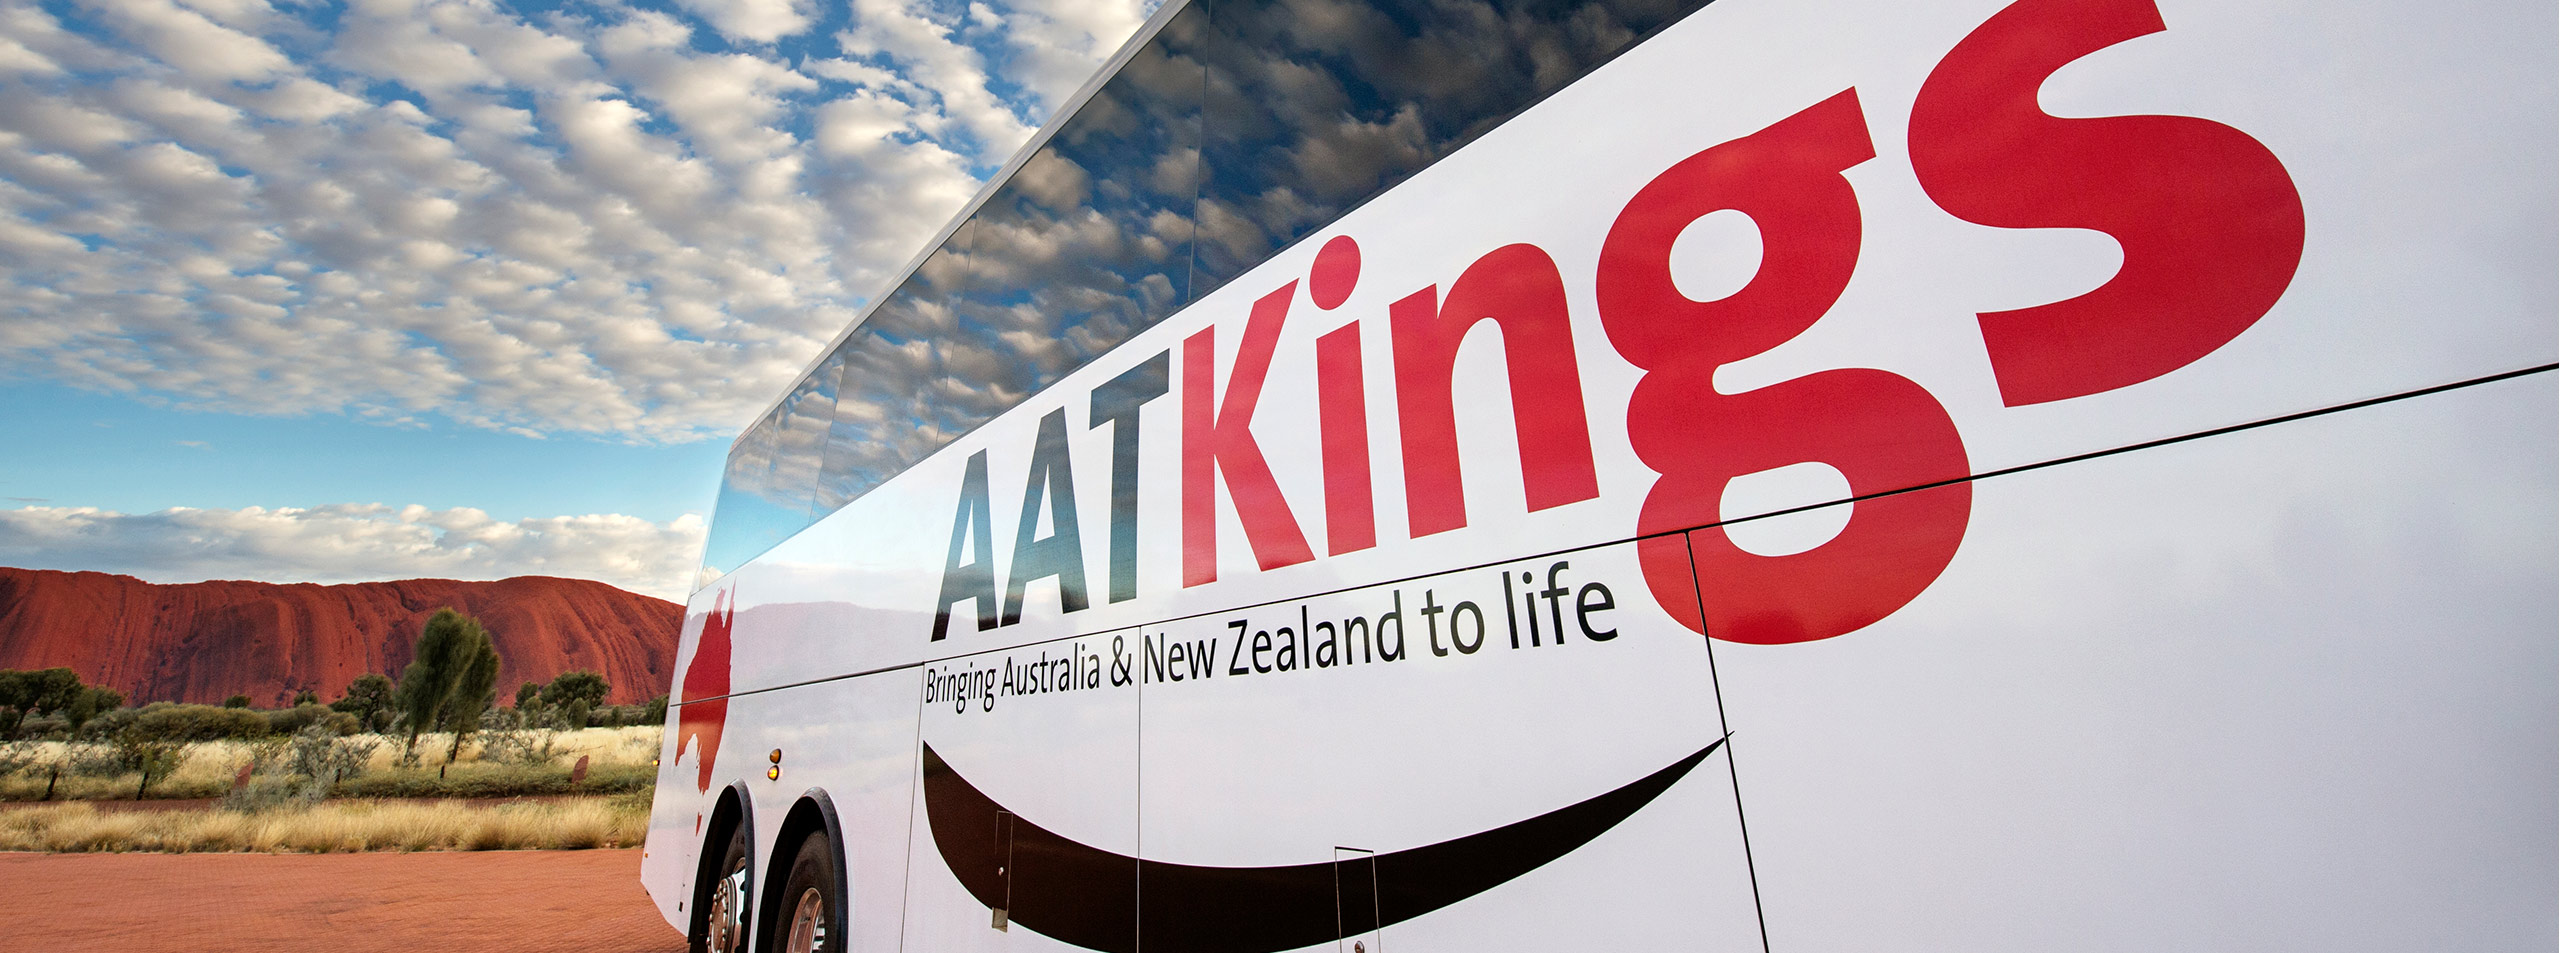 AAT Kings coach at Uluru